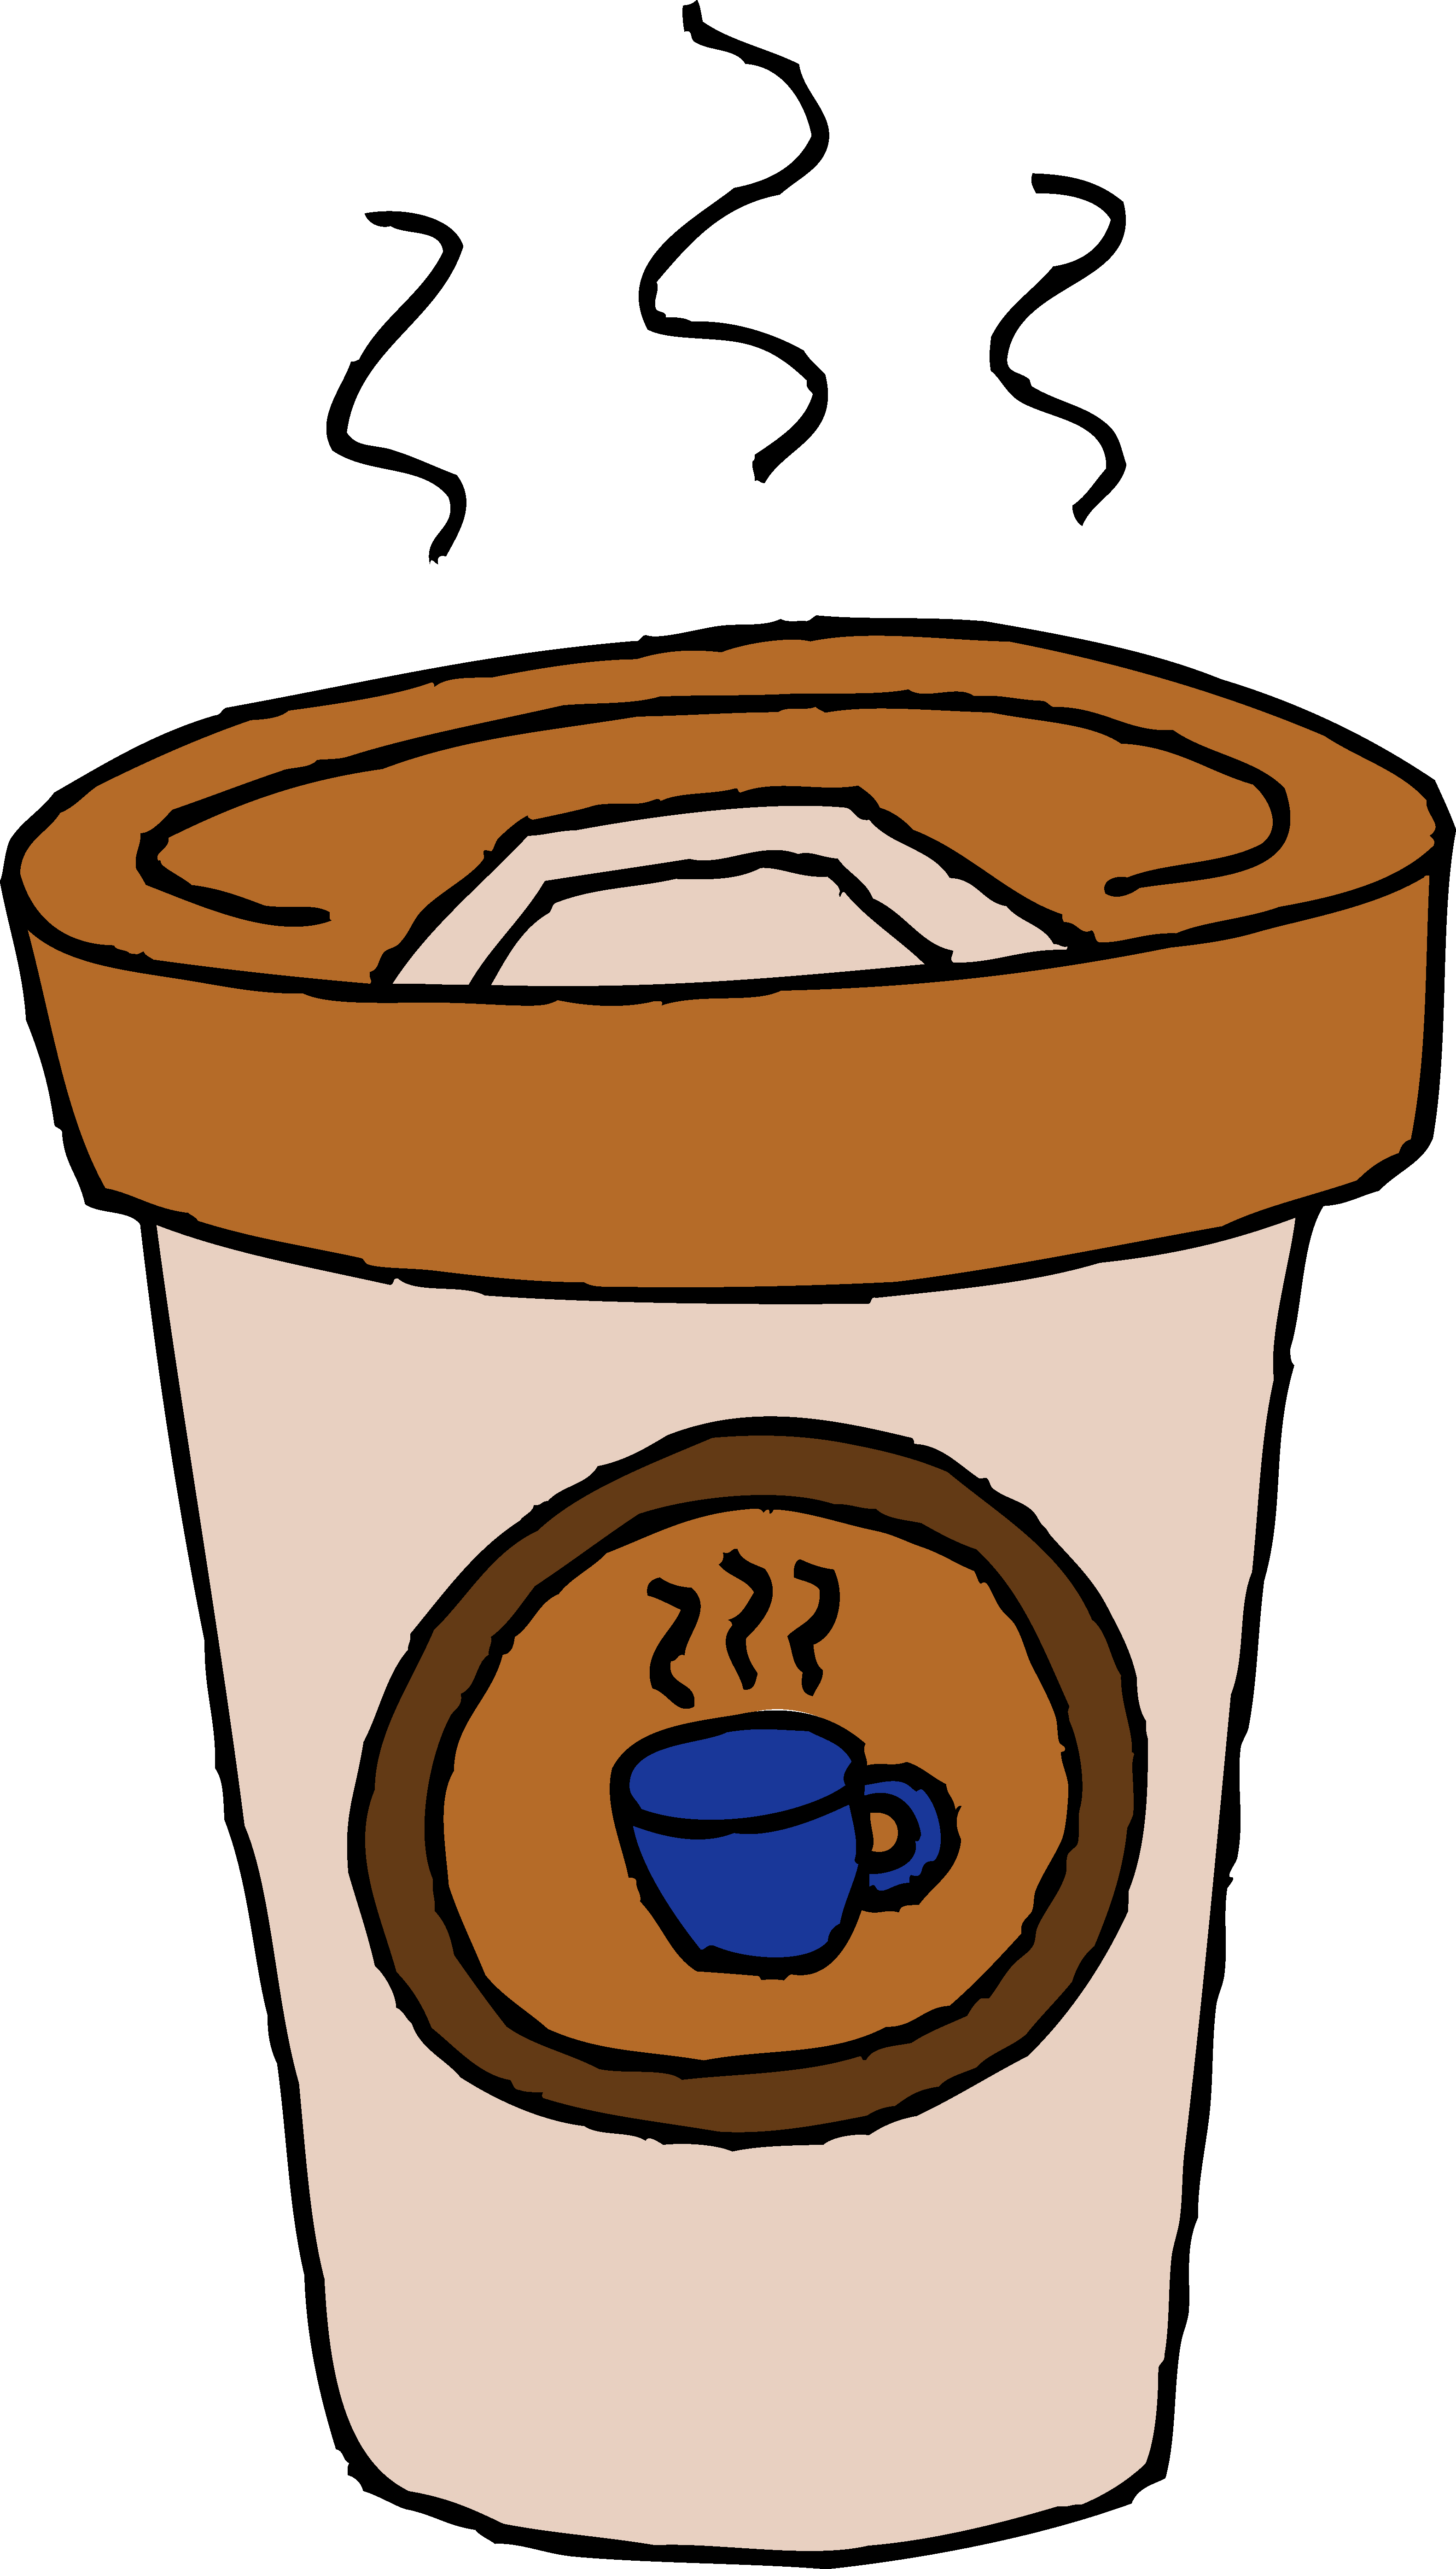 Coffee cup clipart cartoon. Cups are typically made